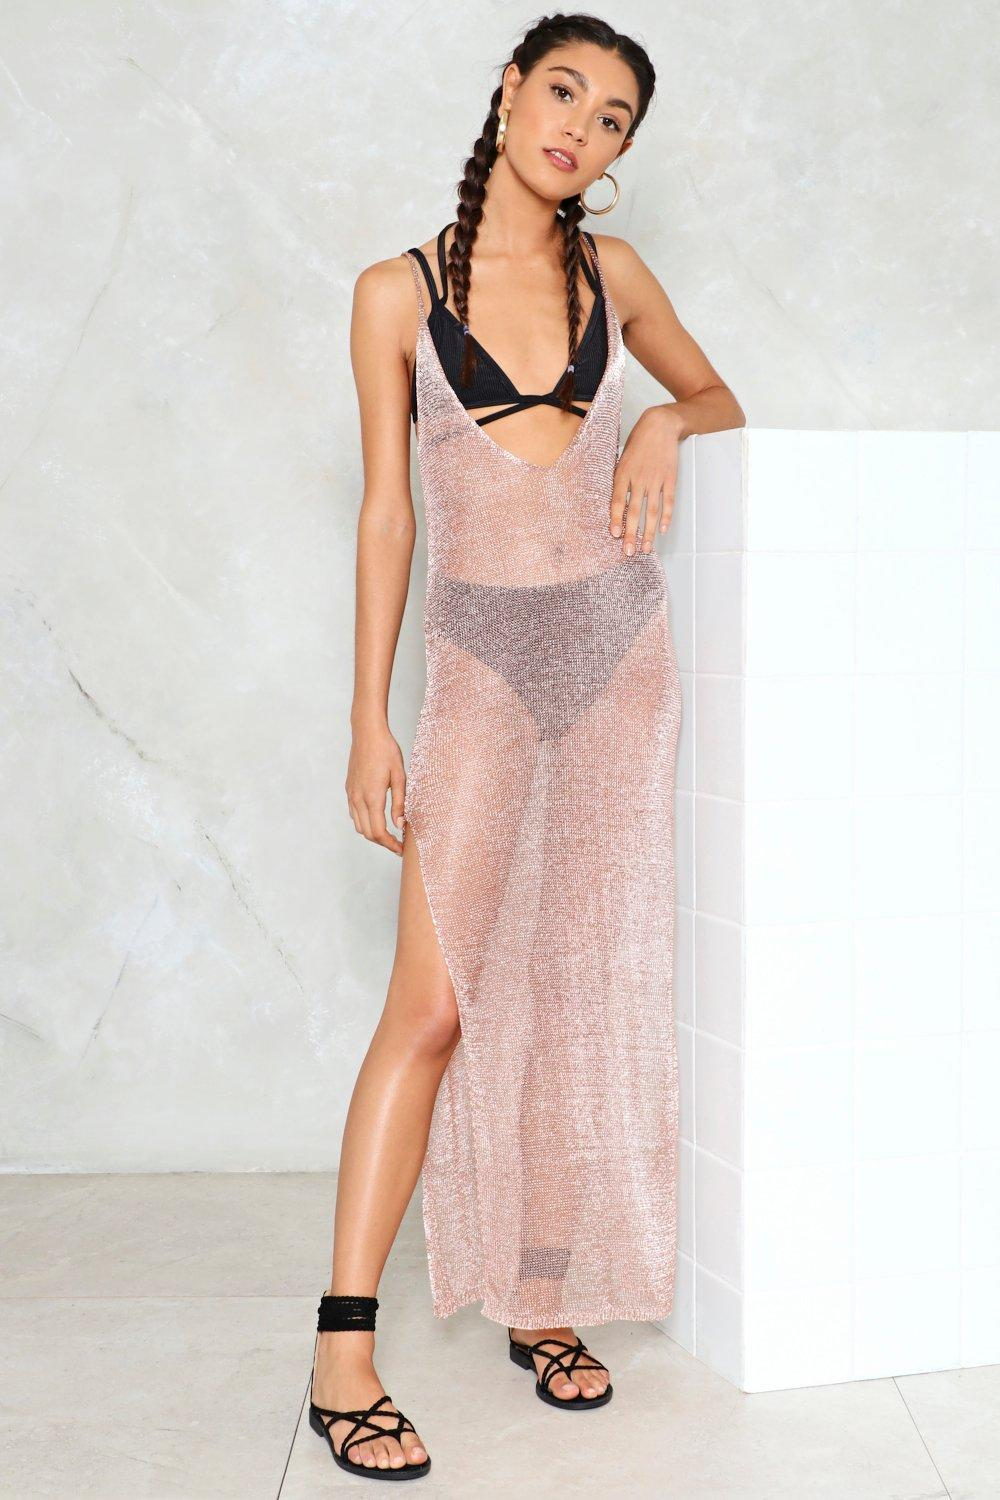 c90c3559bcceaf Metallic Yarn Maxi Beach Cover Up | Shop Clothes at Nasty Gal!